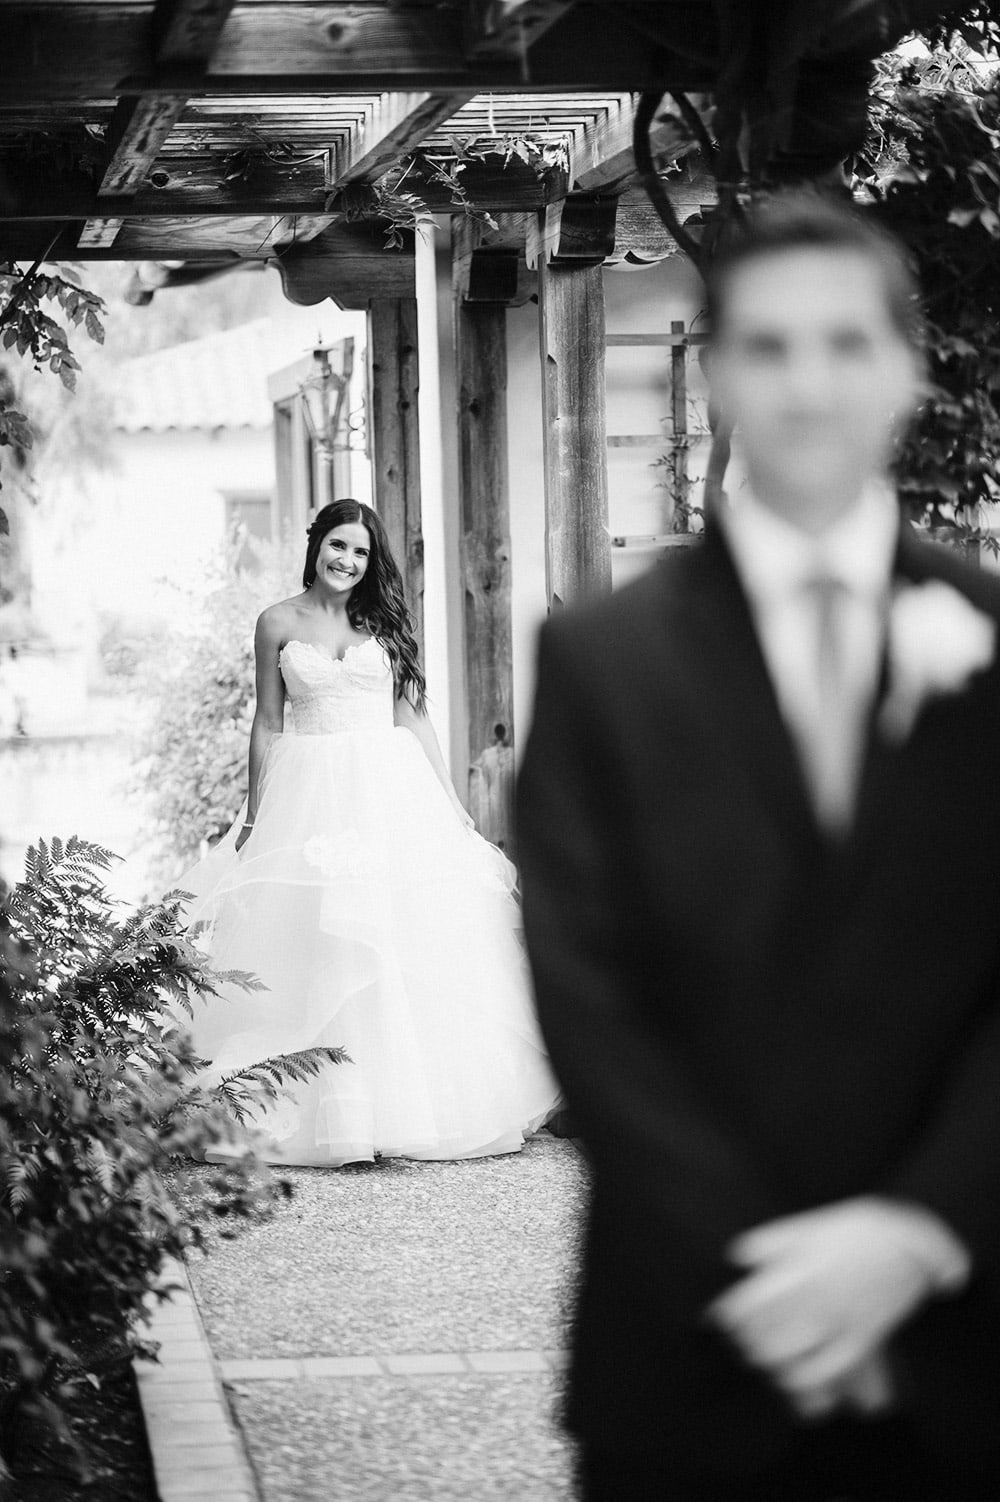 San Luis Obispo Wedding Photographer - Bluephoto Wedding Photography - www.bluephoto.biz